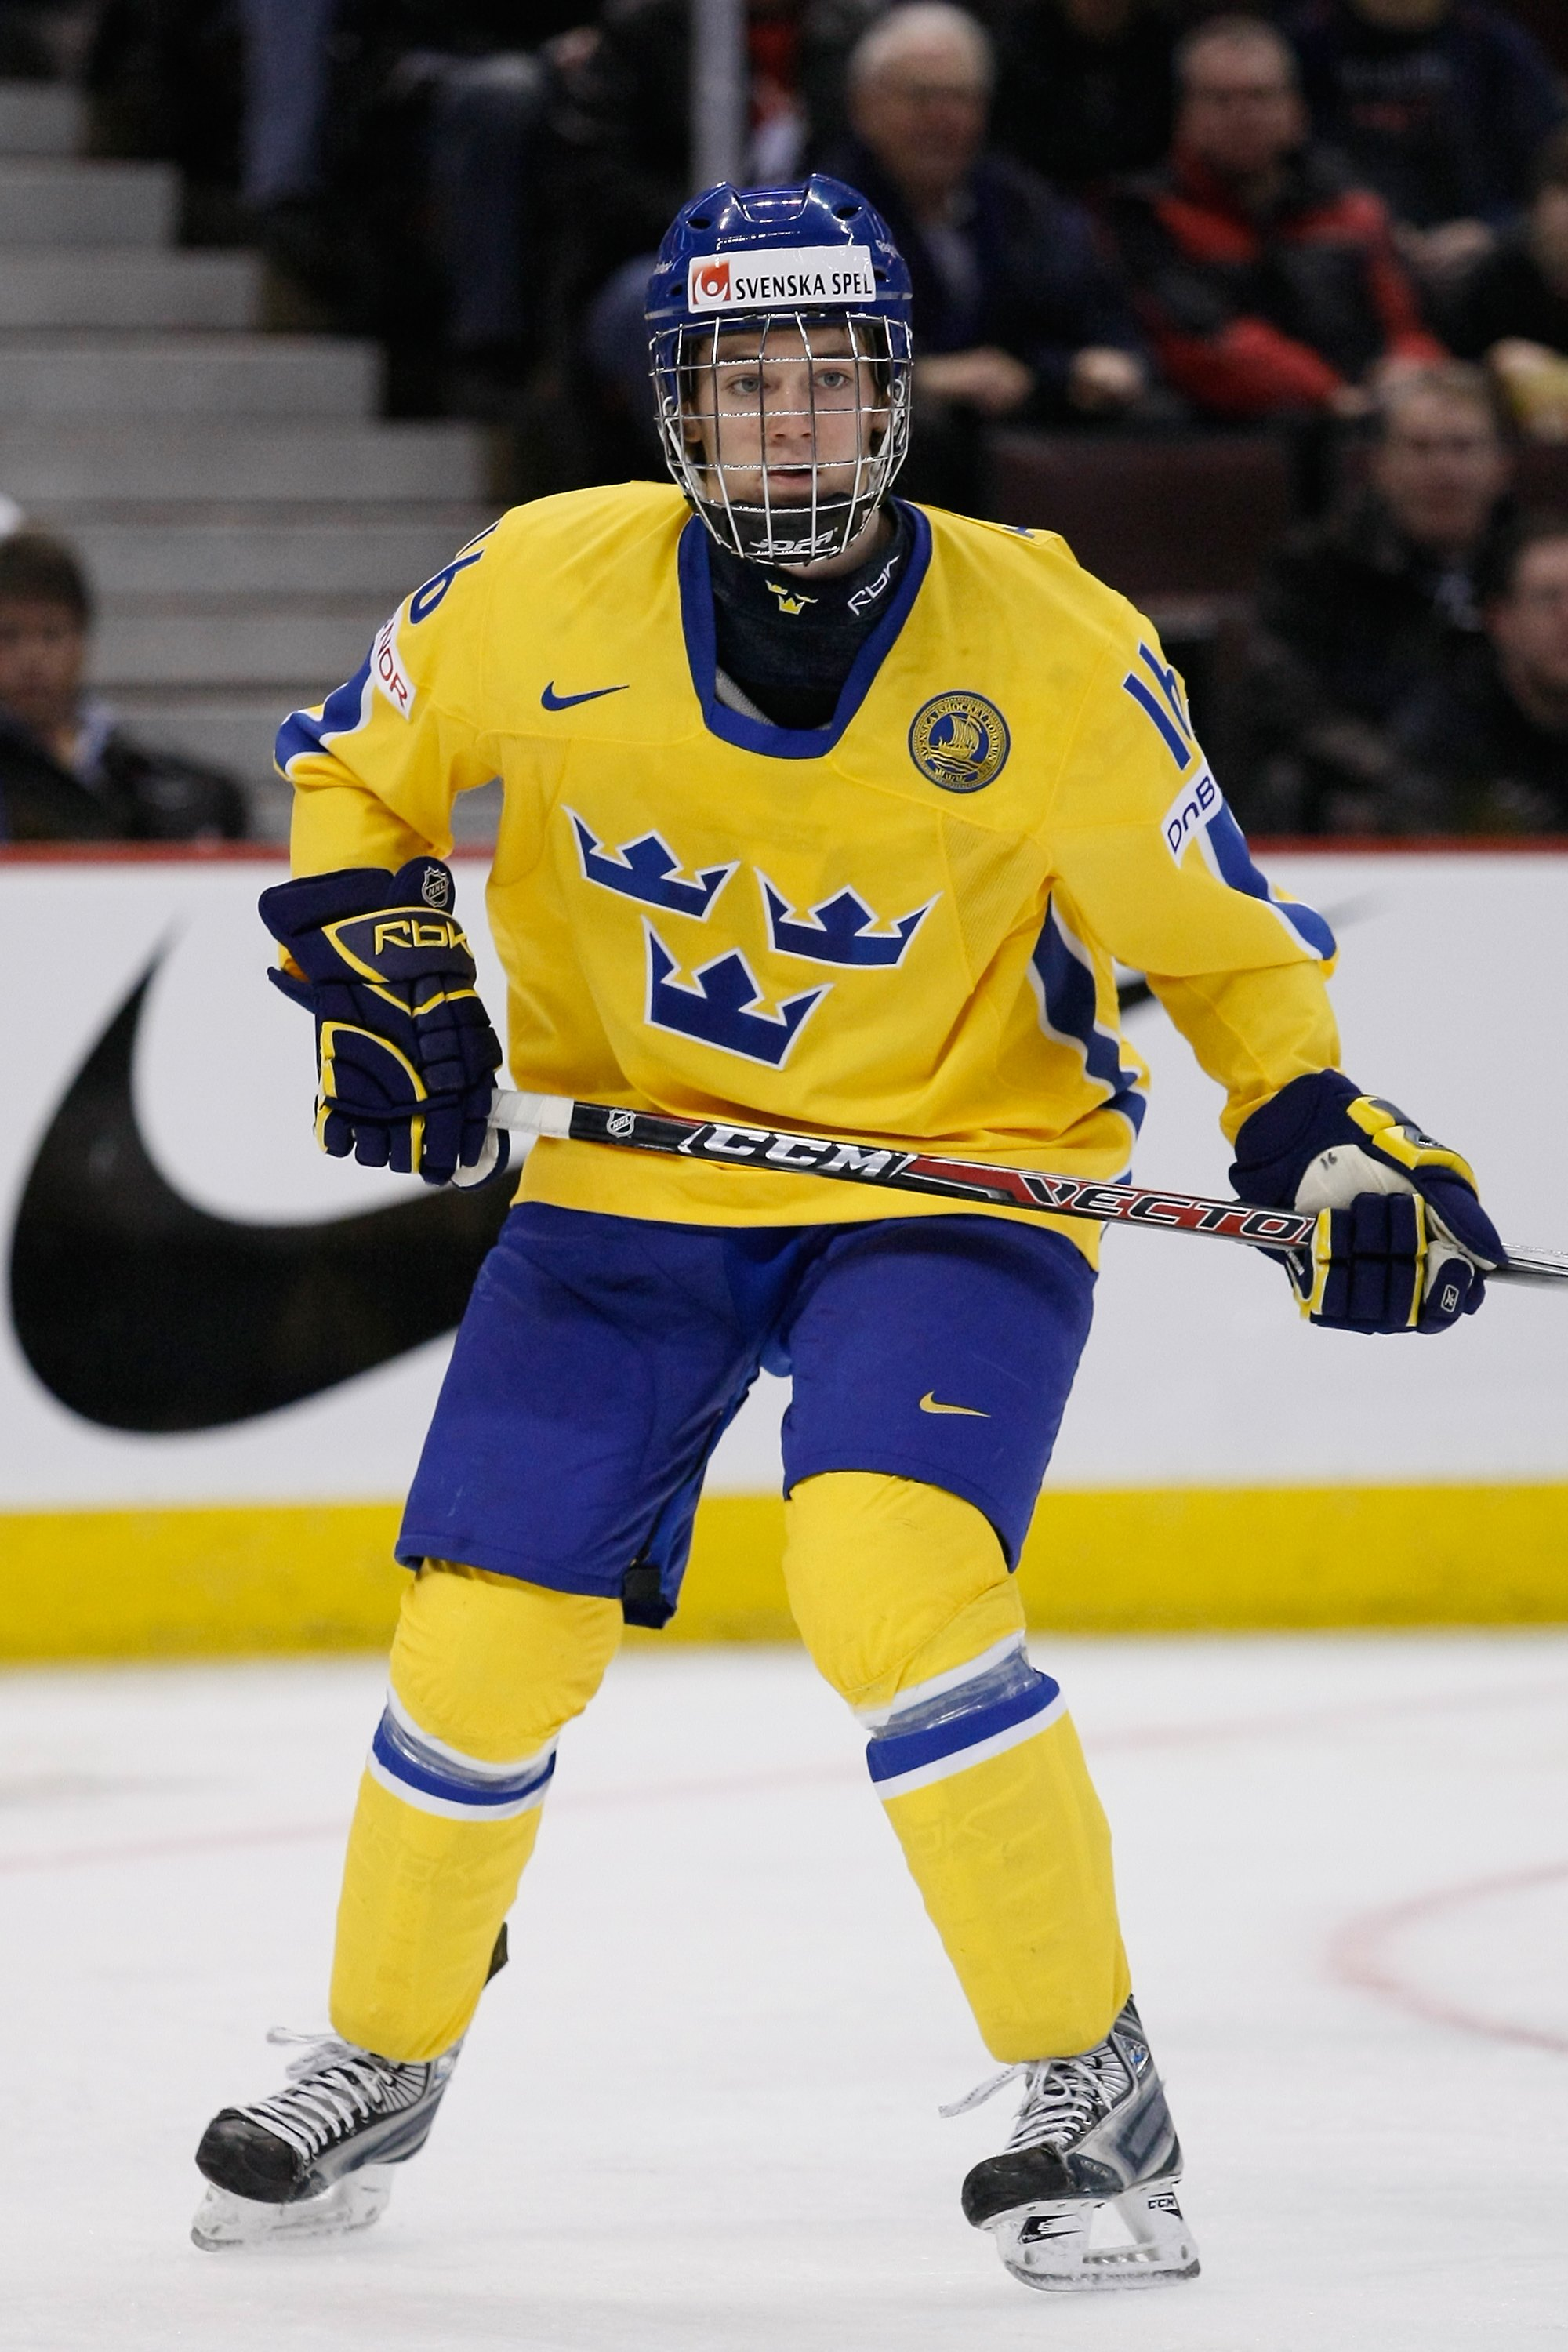 OTTAWA, ON - JANUARY 3:  Tim Erixon #16 of Team Sweden skates during the game against Team Slovakia at the semifinals at the IIHF World Junior Championships at Scotiabank Place on January 03, 2009 in Ottawa, Ontario, Canada.  Team Sweden defeated Team Slo